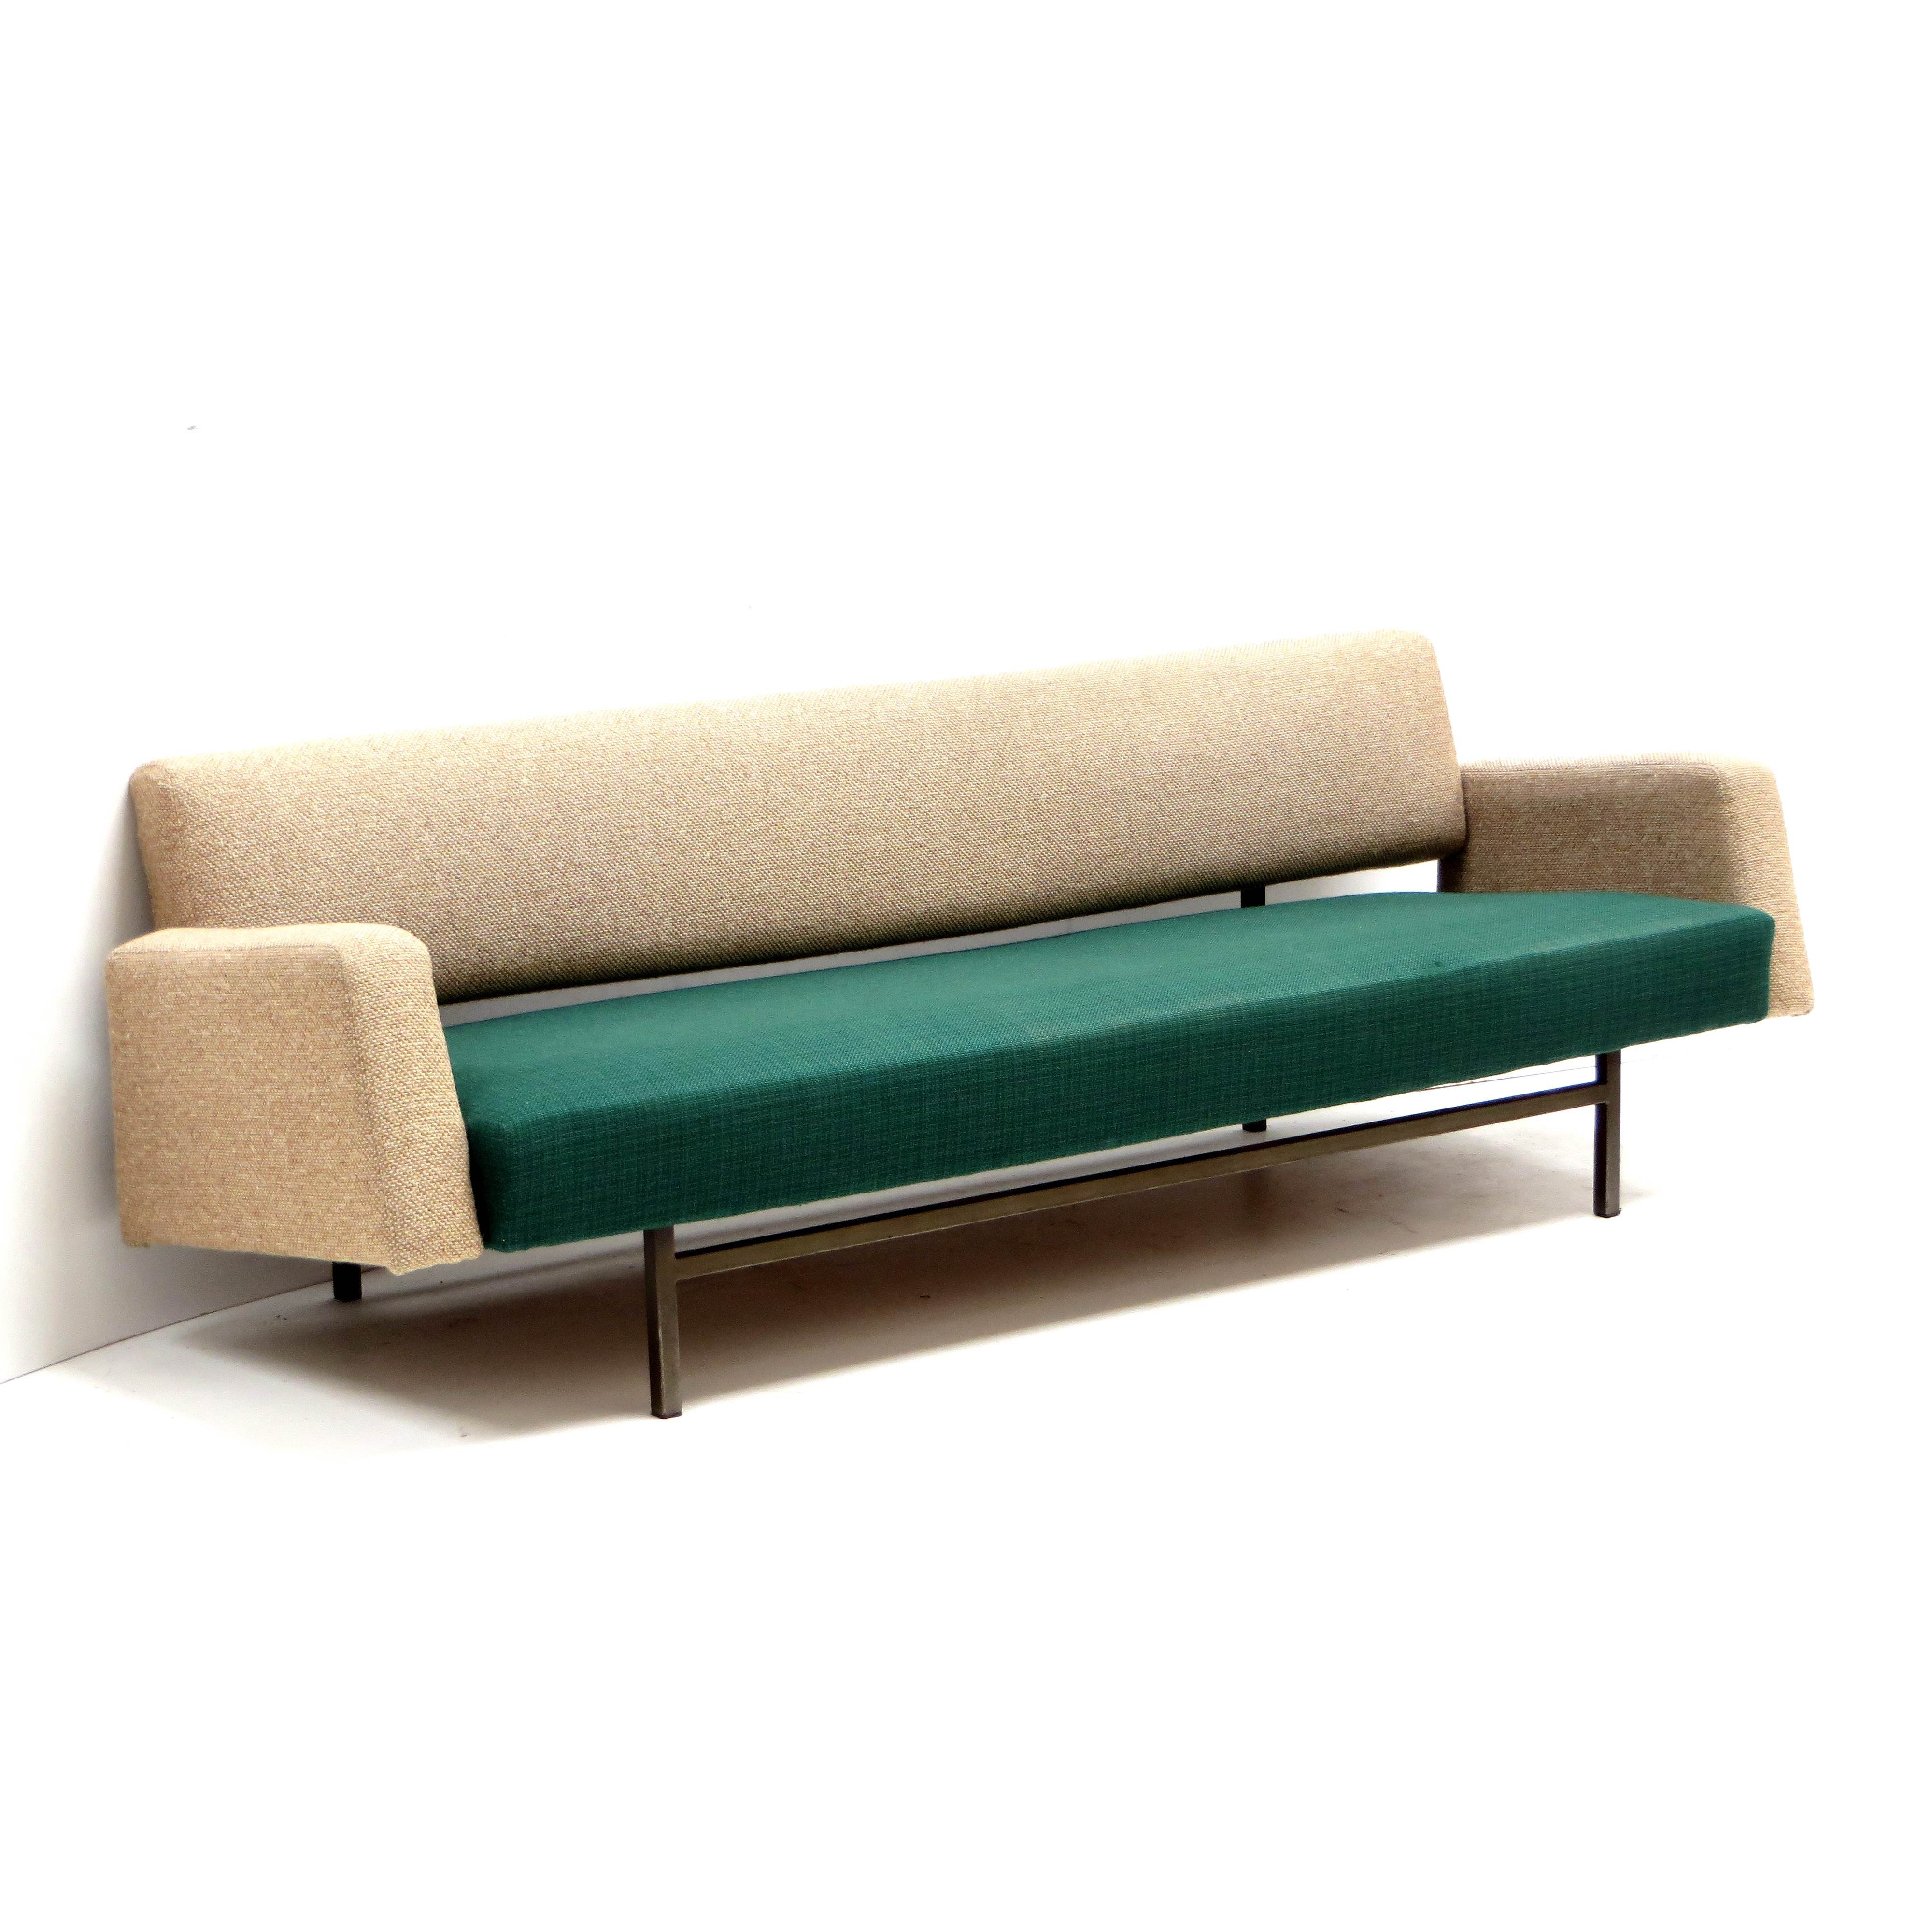 Sofa 60s Vintage Sofa From The 60s